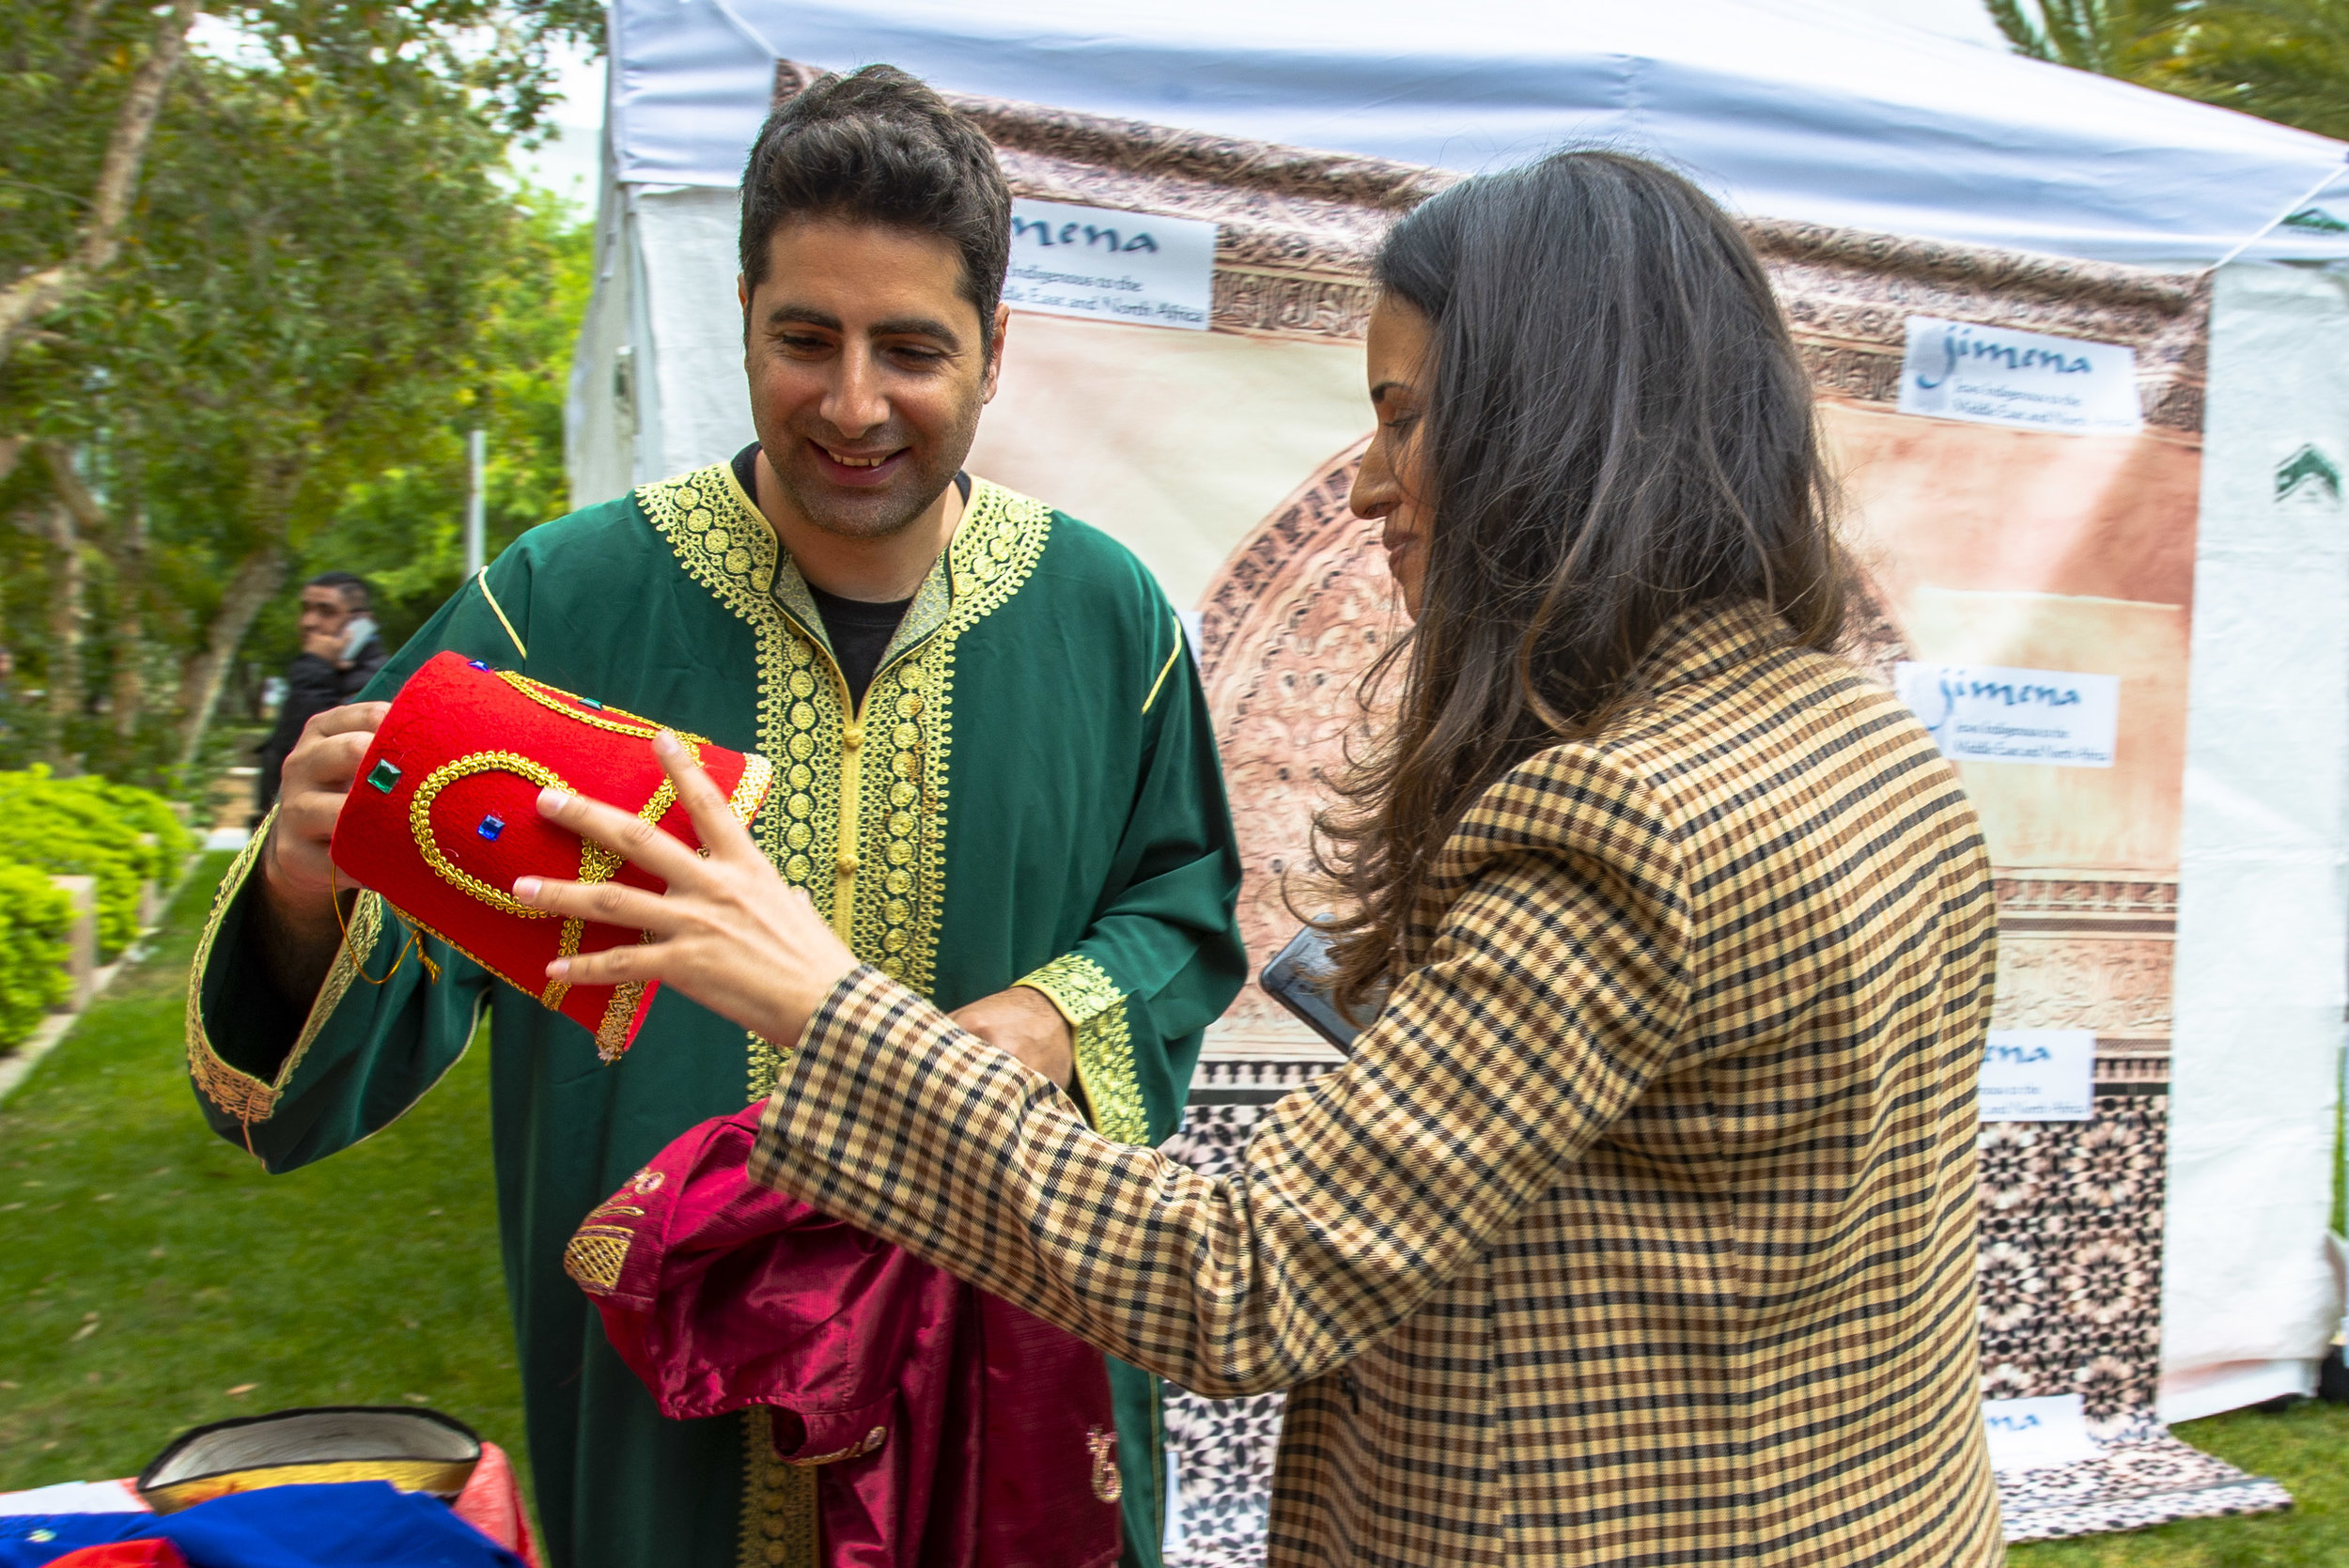 Jews Indigenous to the Middle East and North Africa Los Angeles Program Coordinator, Odin Ozdil (left), shows an israeli Independence Day participant a traditional Fez hat on Thursday, May 9, 2019.